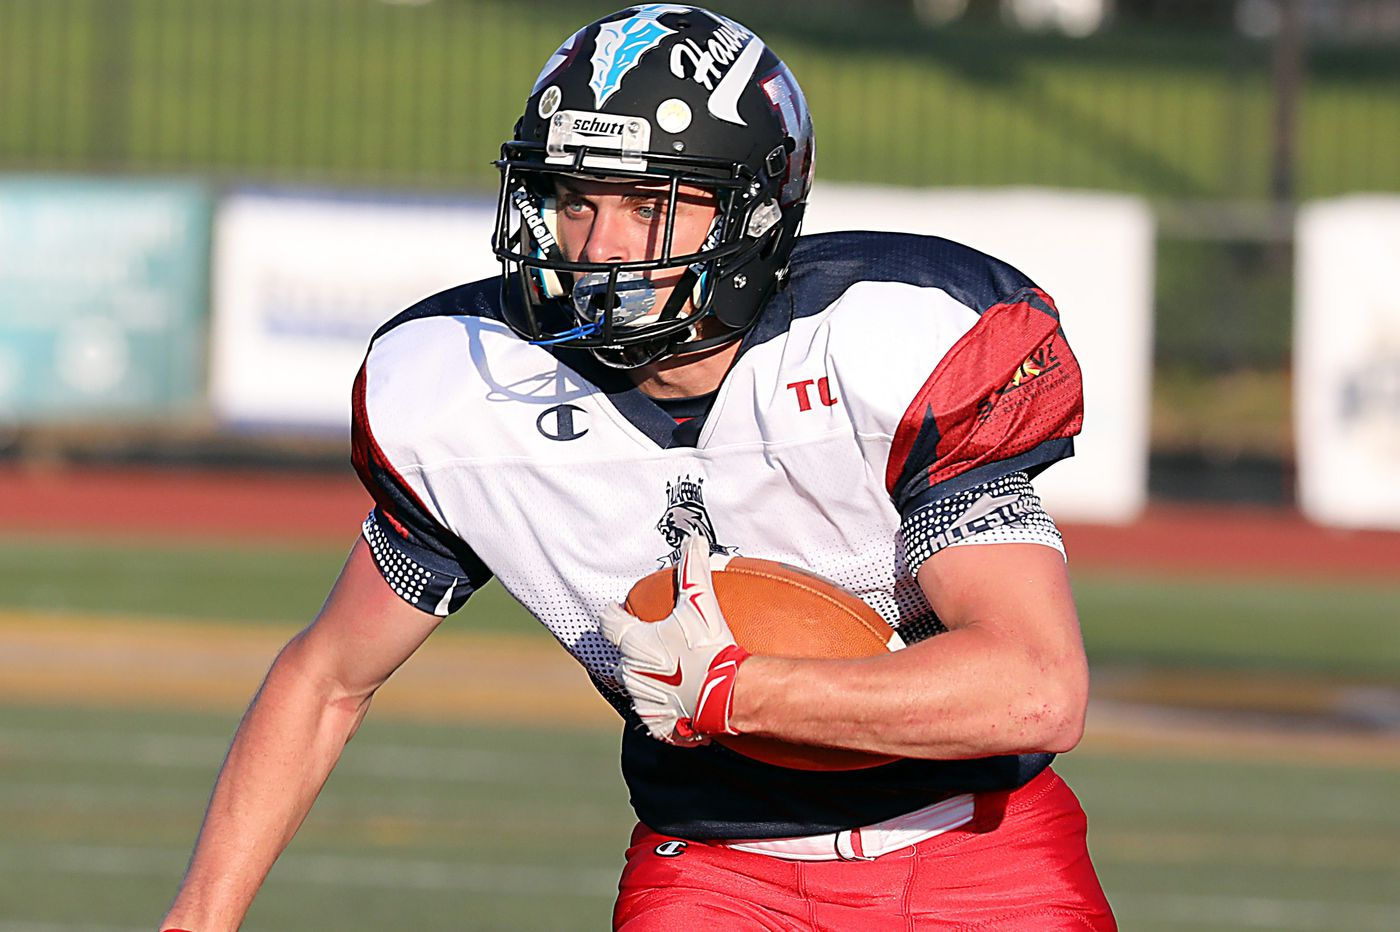 For Towson-bound Kevin Zehner, Taliaferro all-star game a sweet sendoff